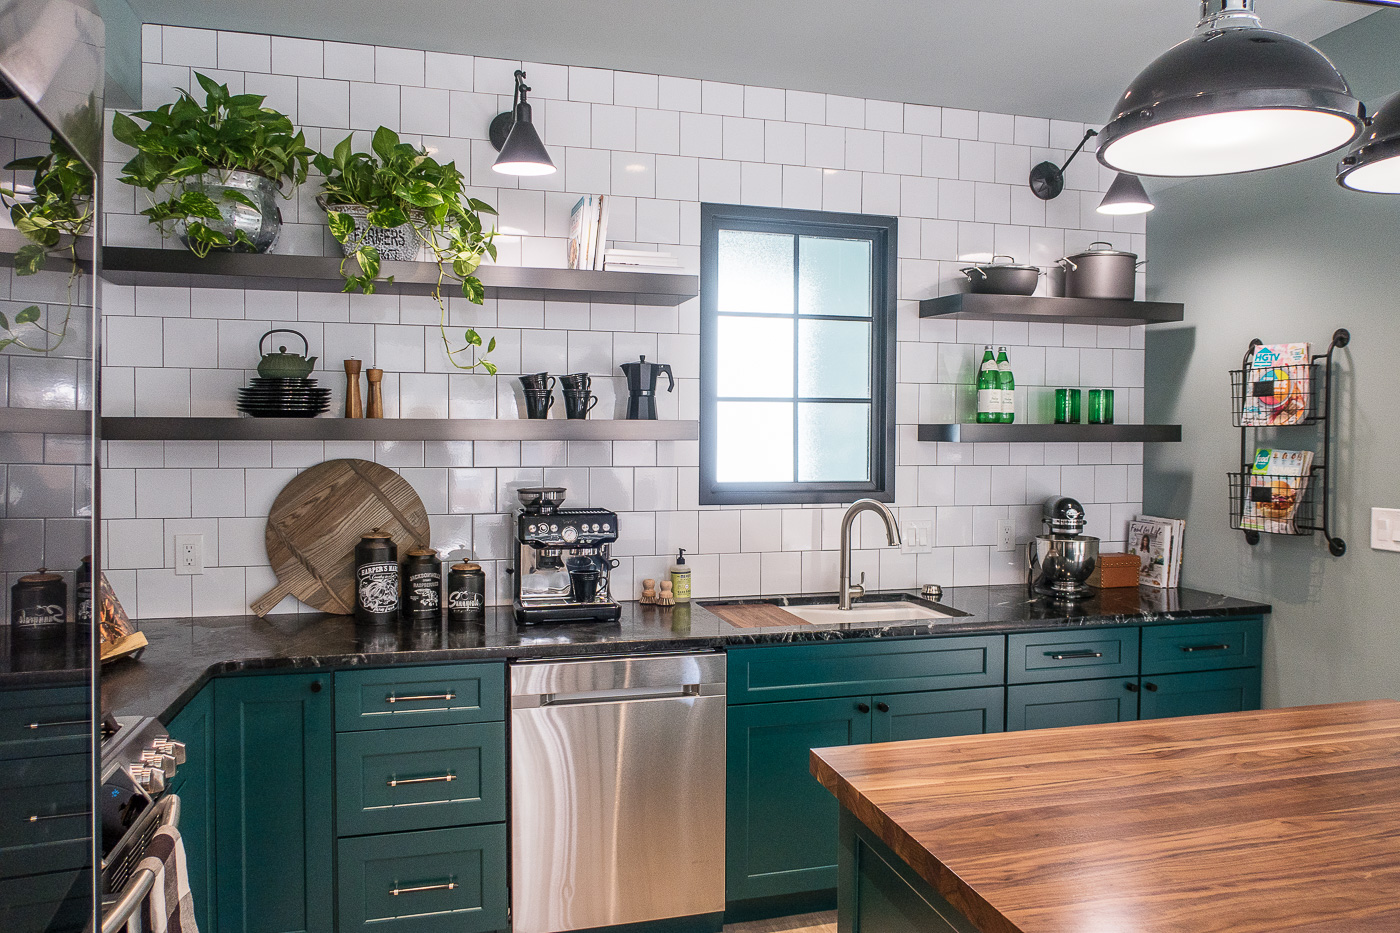 Kitchen with Green Cabients and Subway Tile